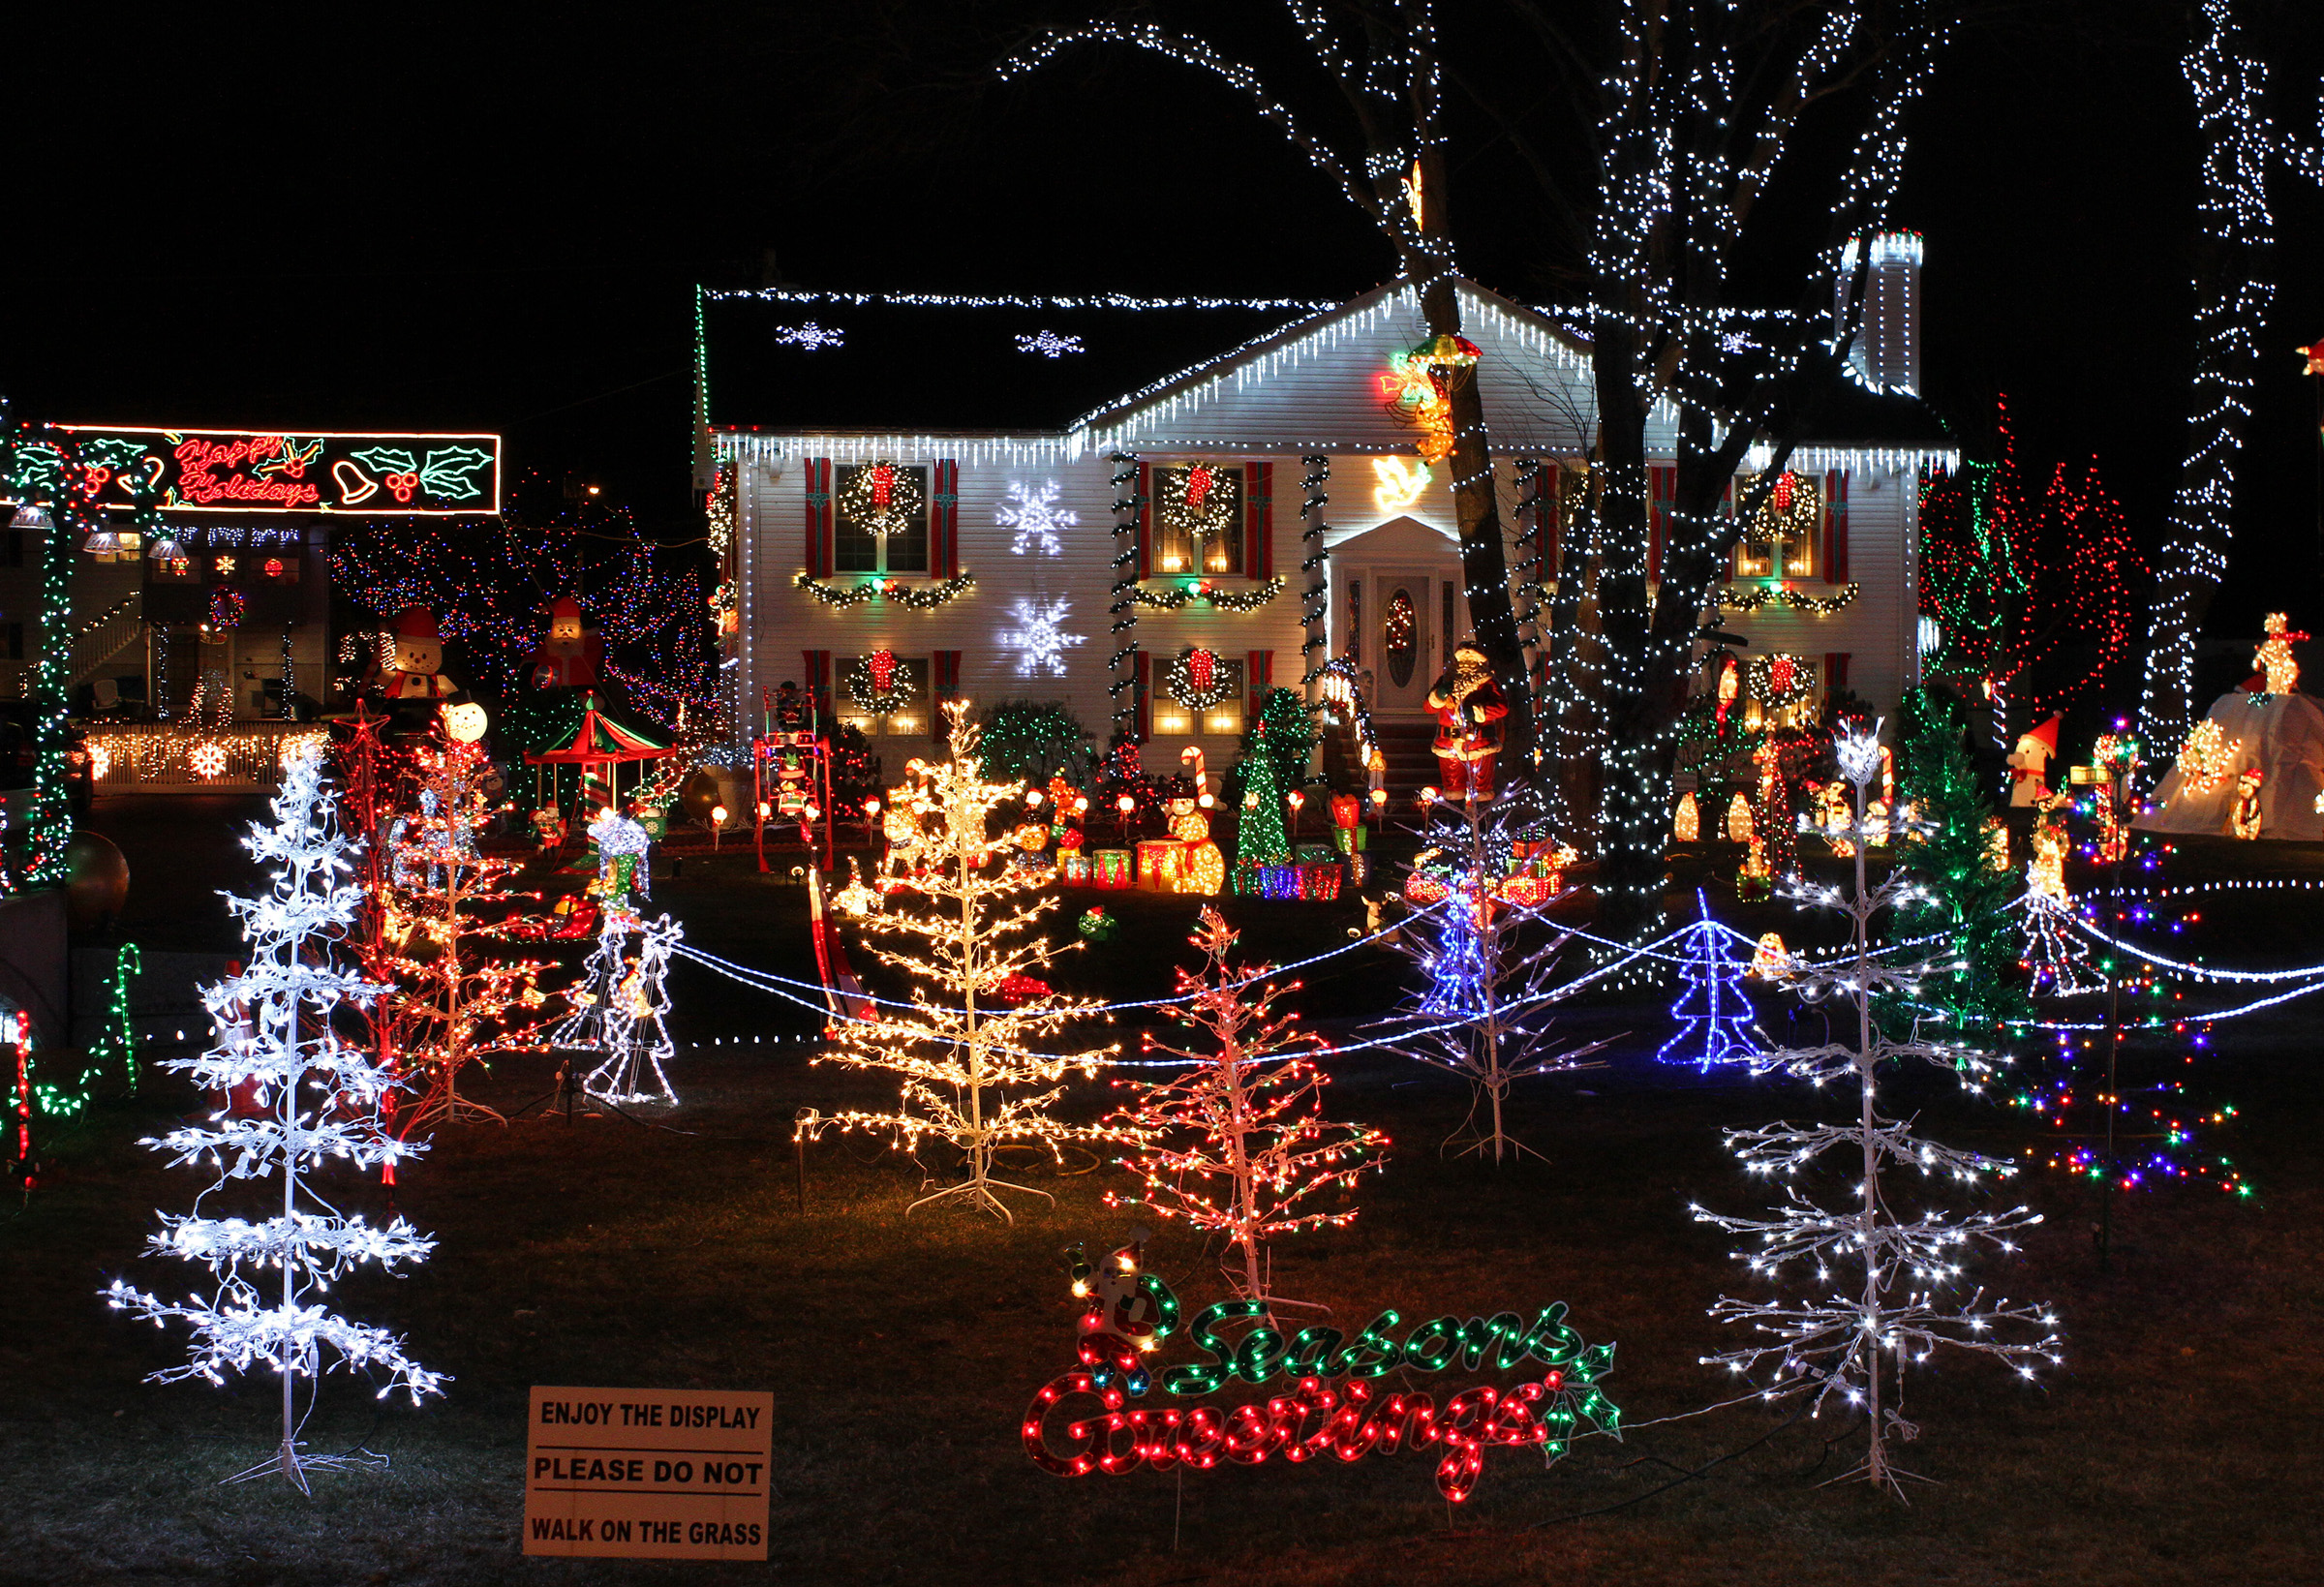 File Christmas Lights house displayJPG   Wikimedia Commons DLehUDkB